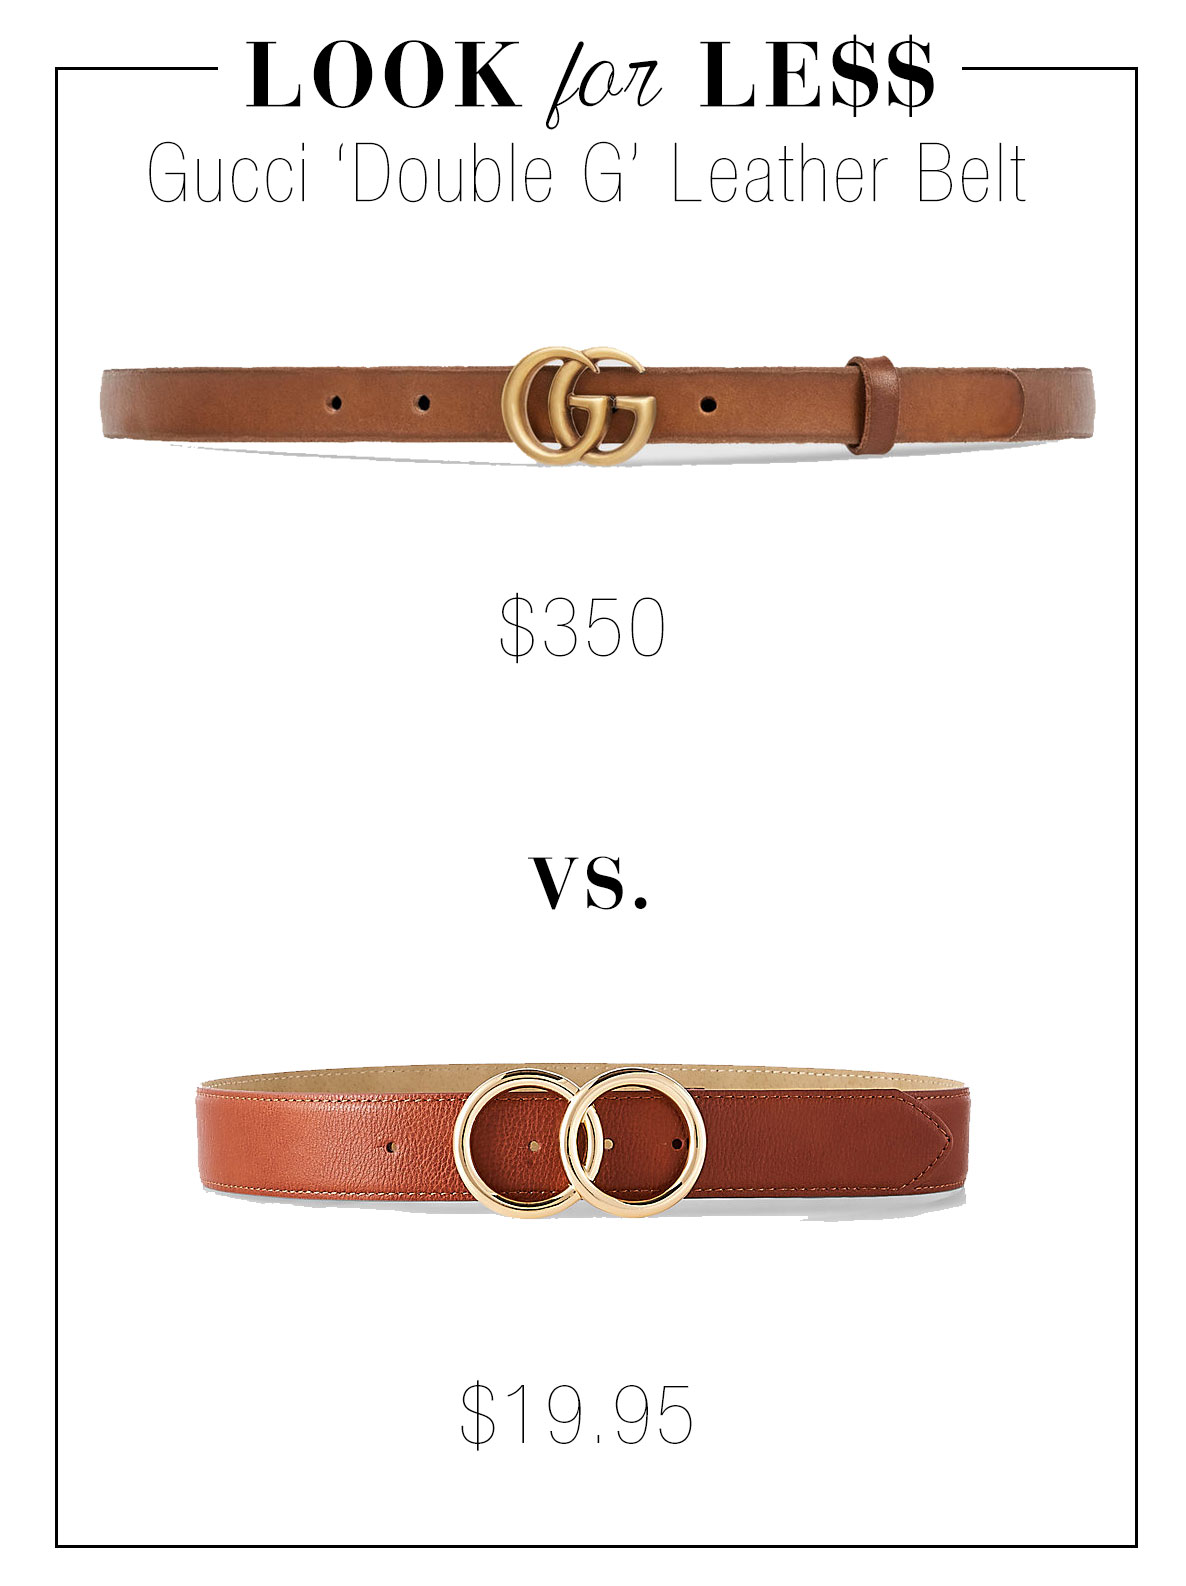 Gucci belt look for less at Express